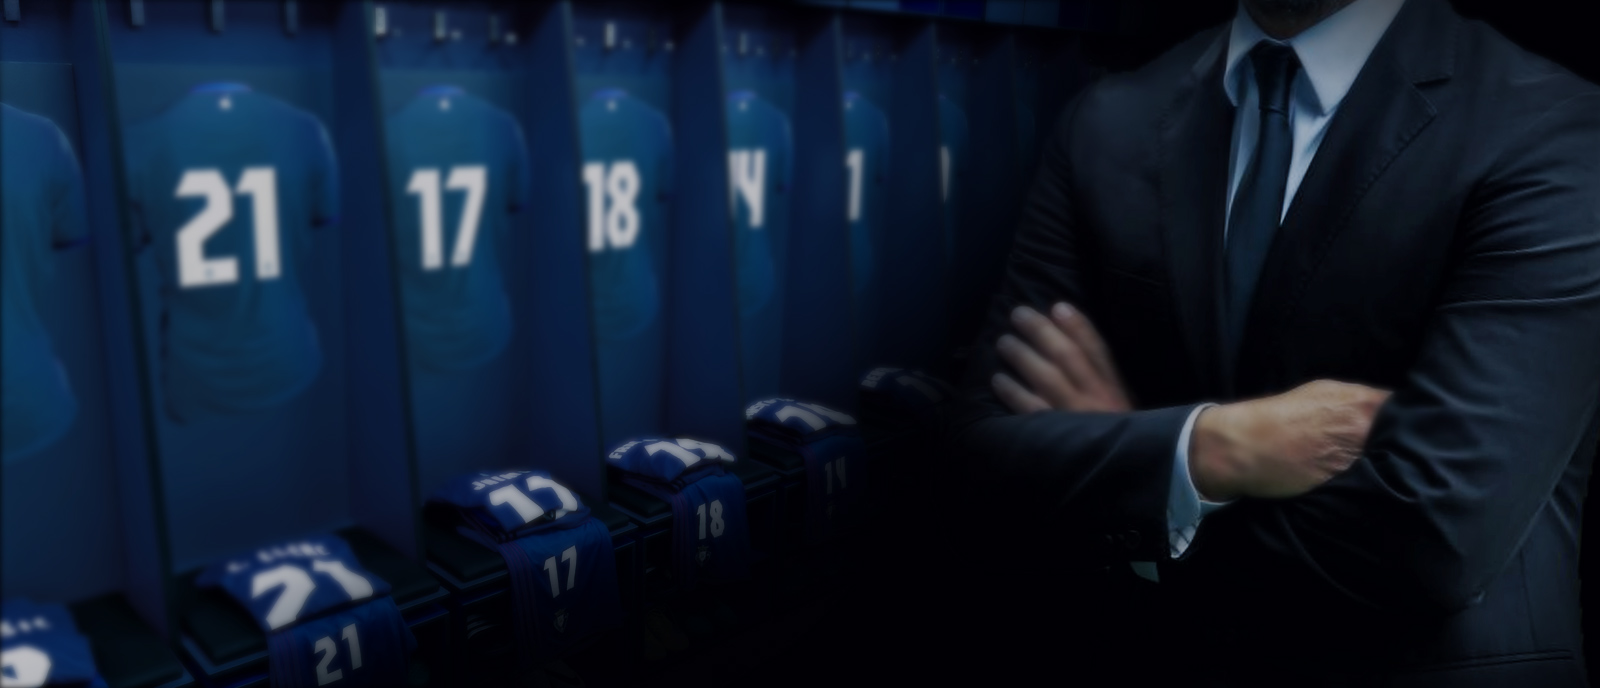 assist-sport-manager-changing-room